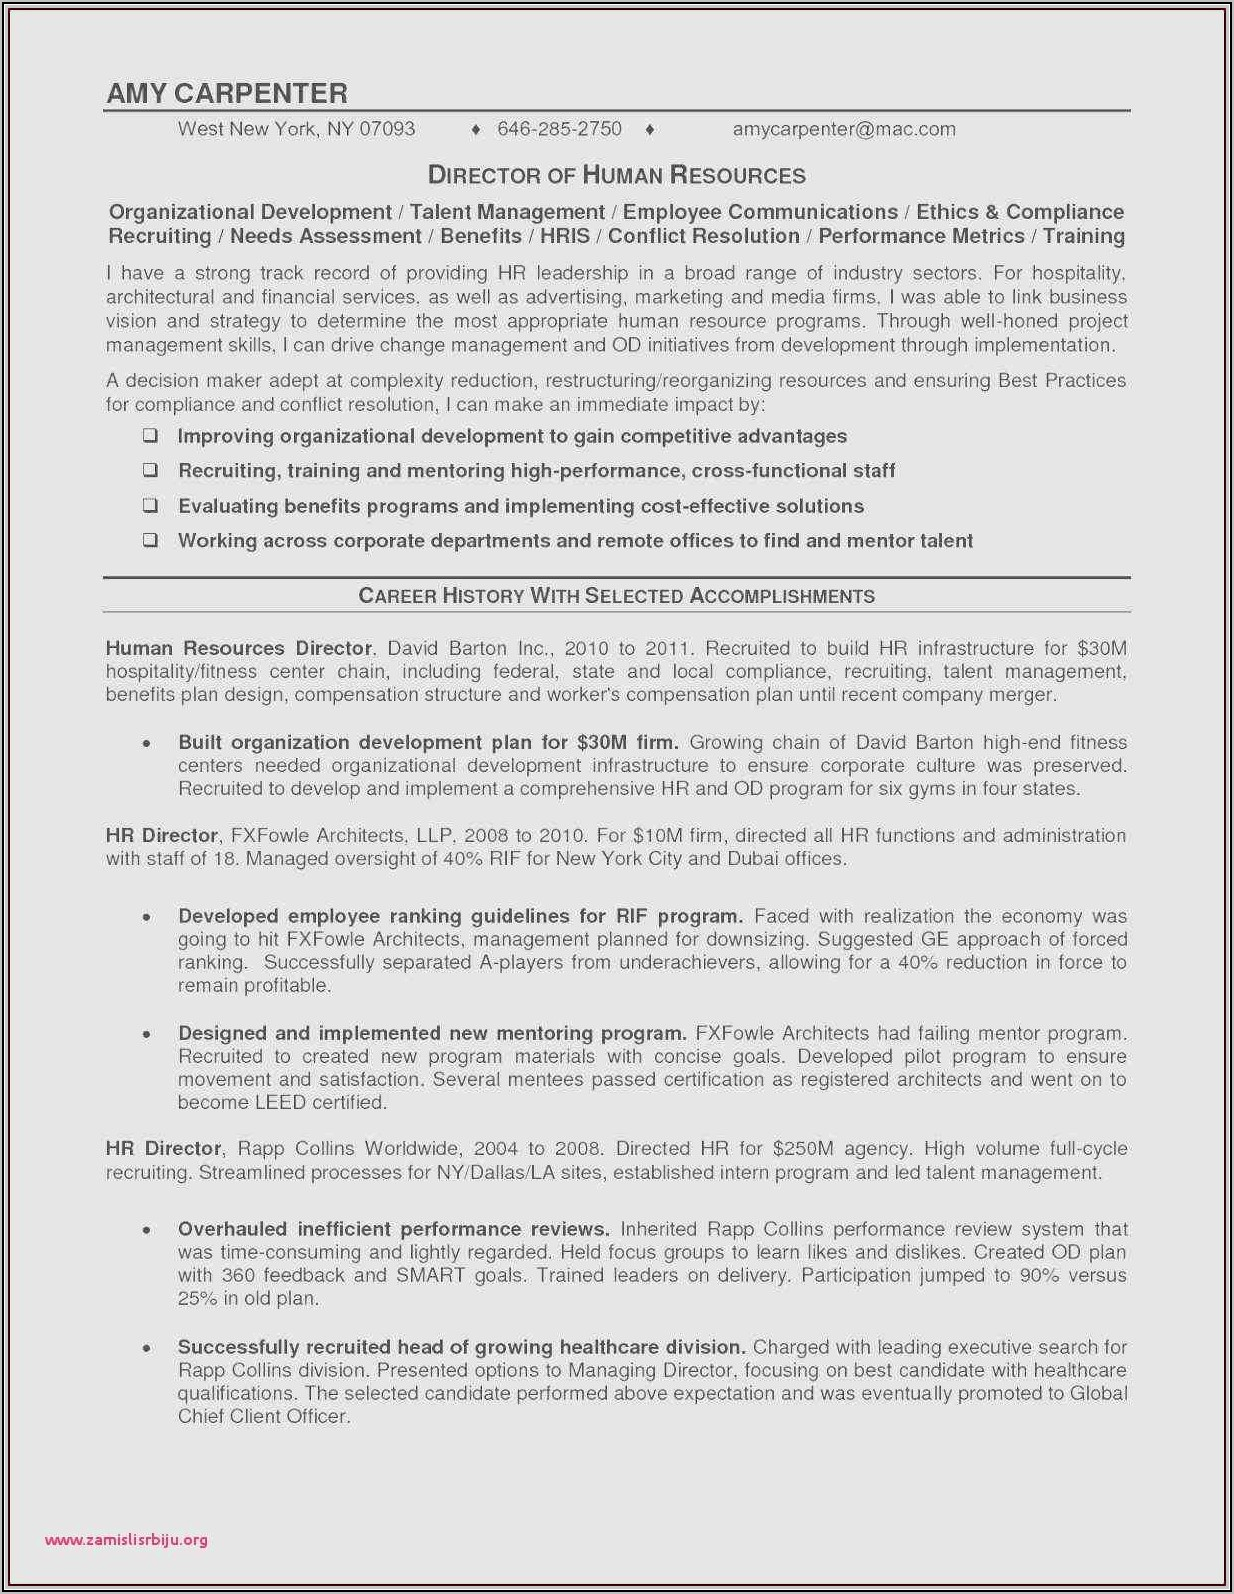 Resume Format For Sales Executives